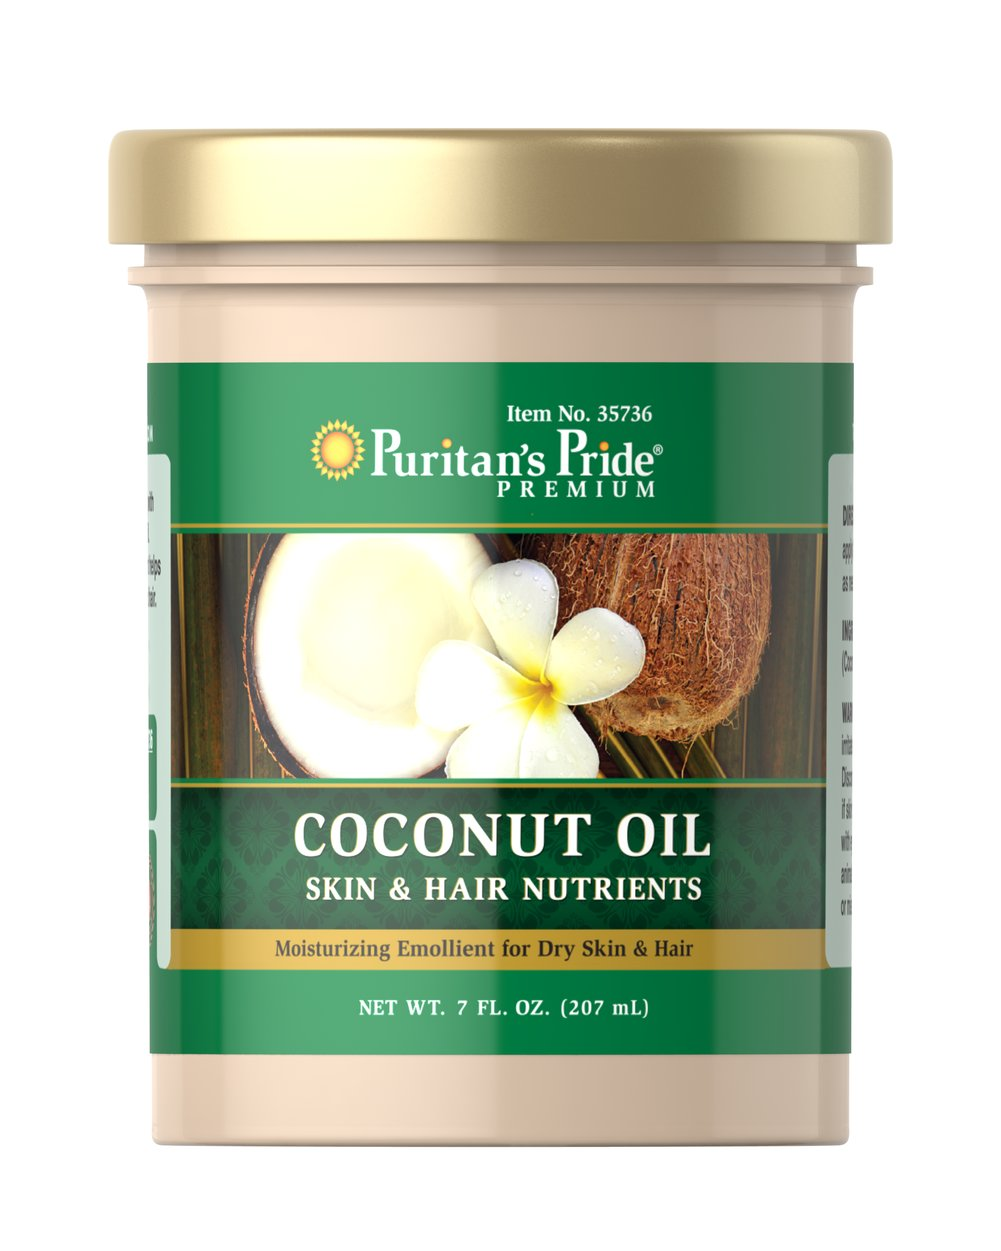 Coconut Oil for Skin & Hair <p>Pamper your body with  Coconut Oil! This exotic topical nutrient will help moisturize and soften dry, rough skin – and can even be used in your hair! And like the name implies, there's just one ingredient: coconut oil! No fillers or added fragrances.</p> 7 fl oz Oil  $10.29